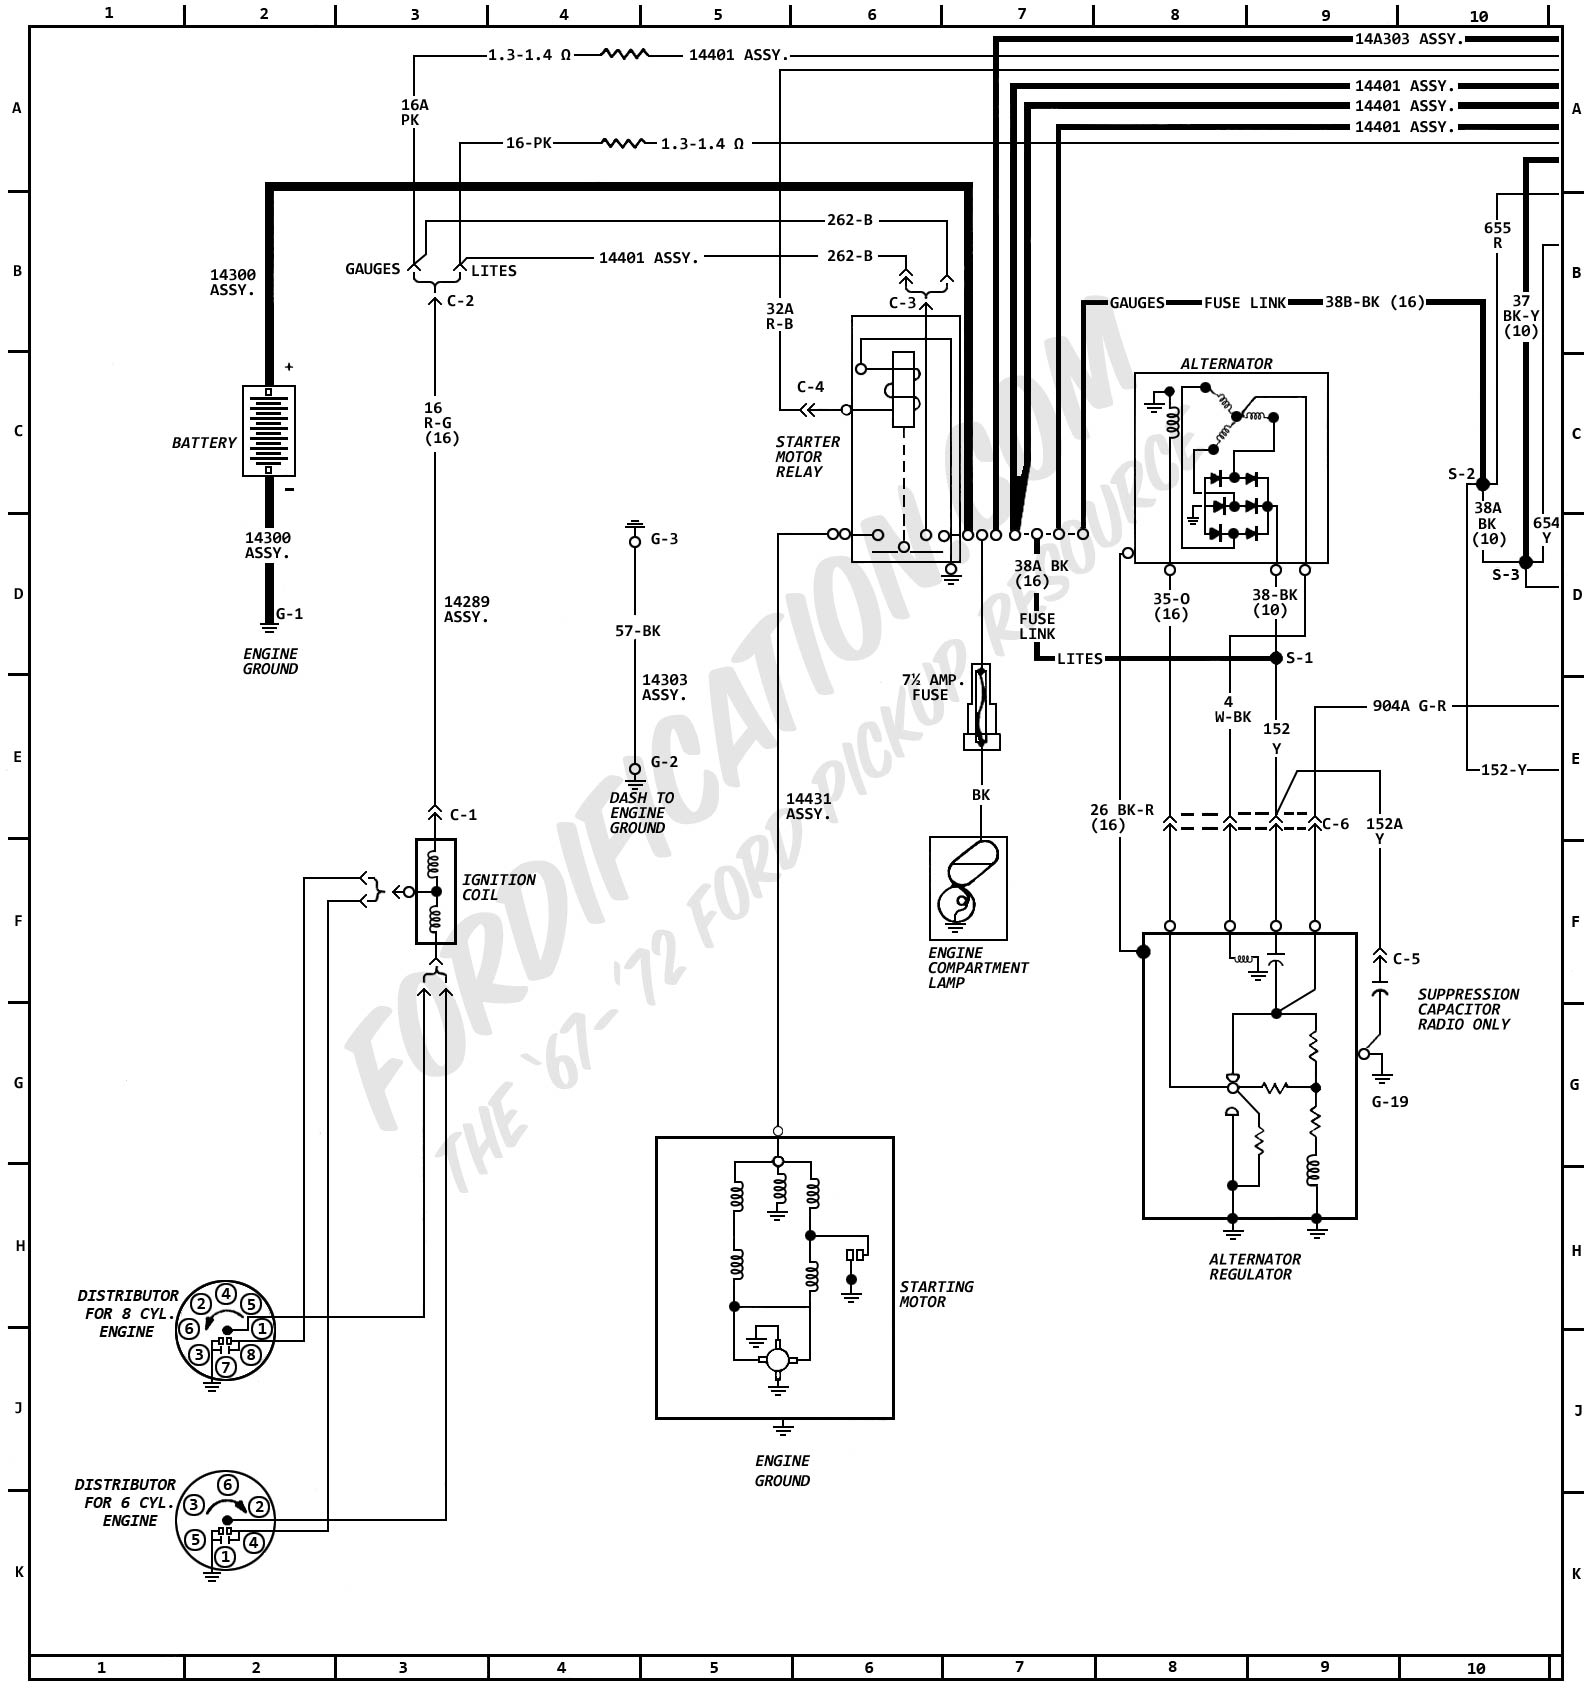 1972 Blazer Wiring Diagram Library 71 Charger F250 Schematics Diagrams U2022 1971 Chevy 2wd